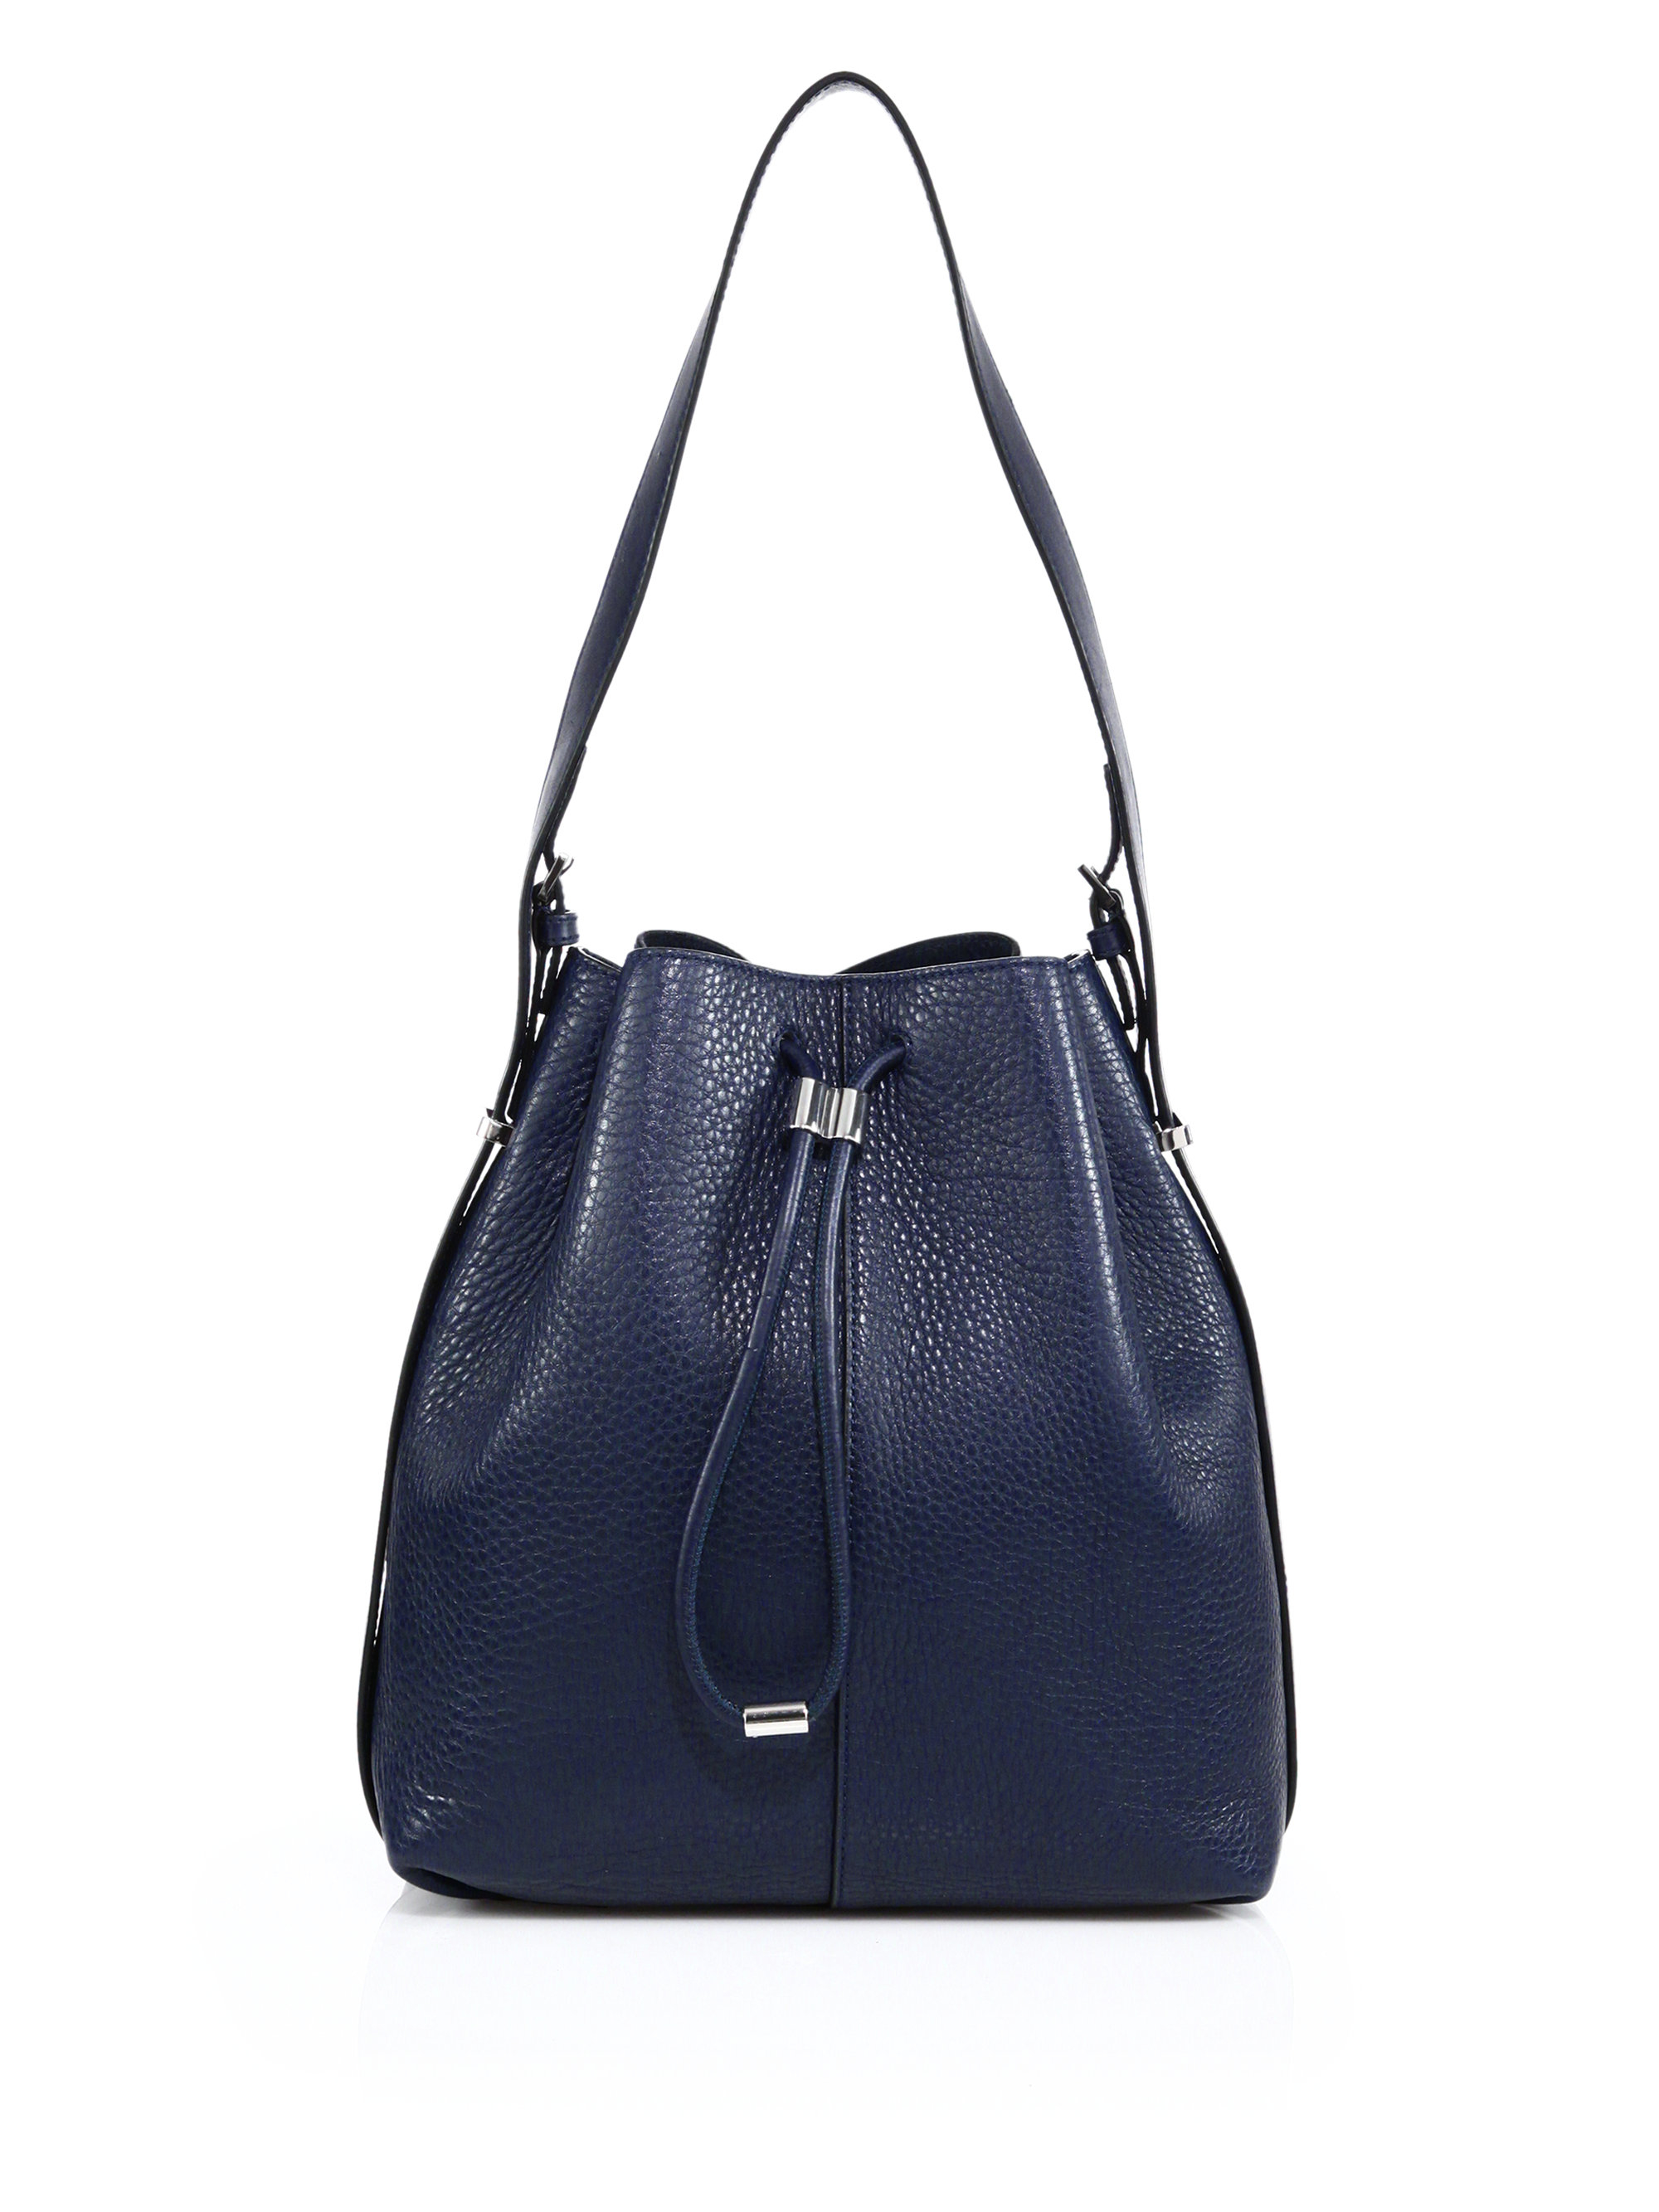 Alexander wang Prisma Leather Bucket Bag in Blue | Lyst